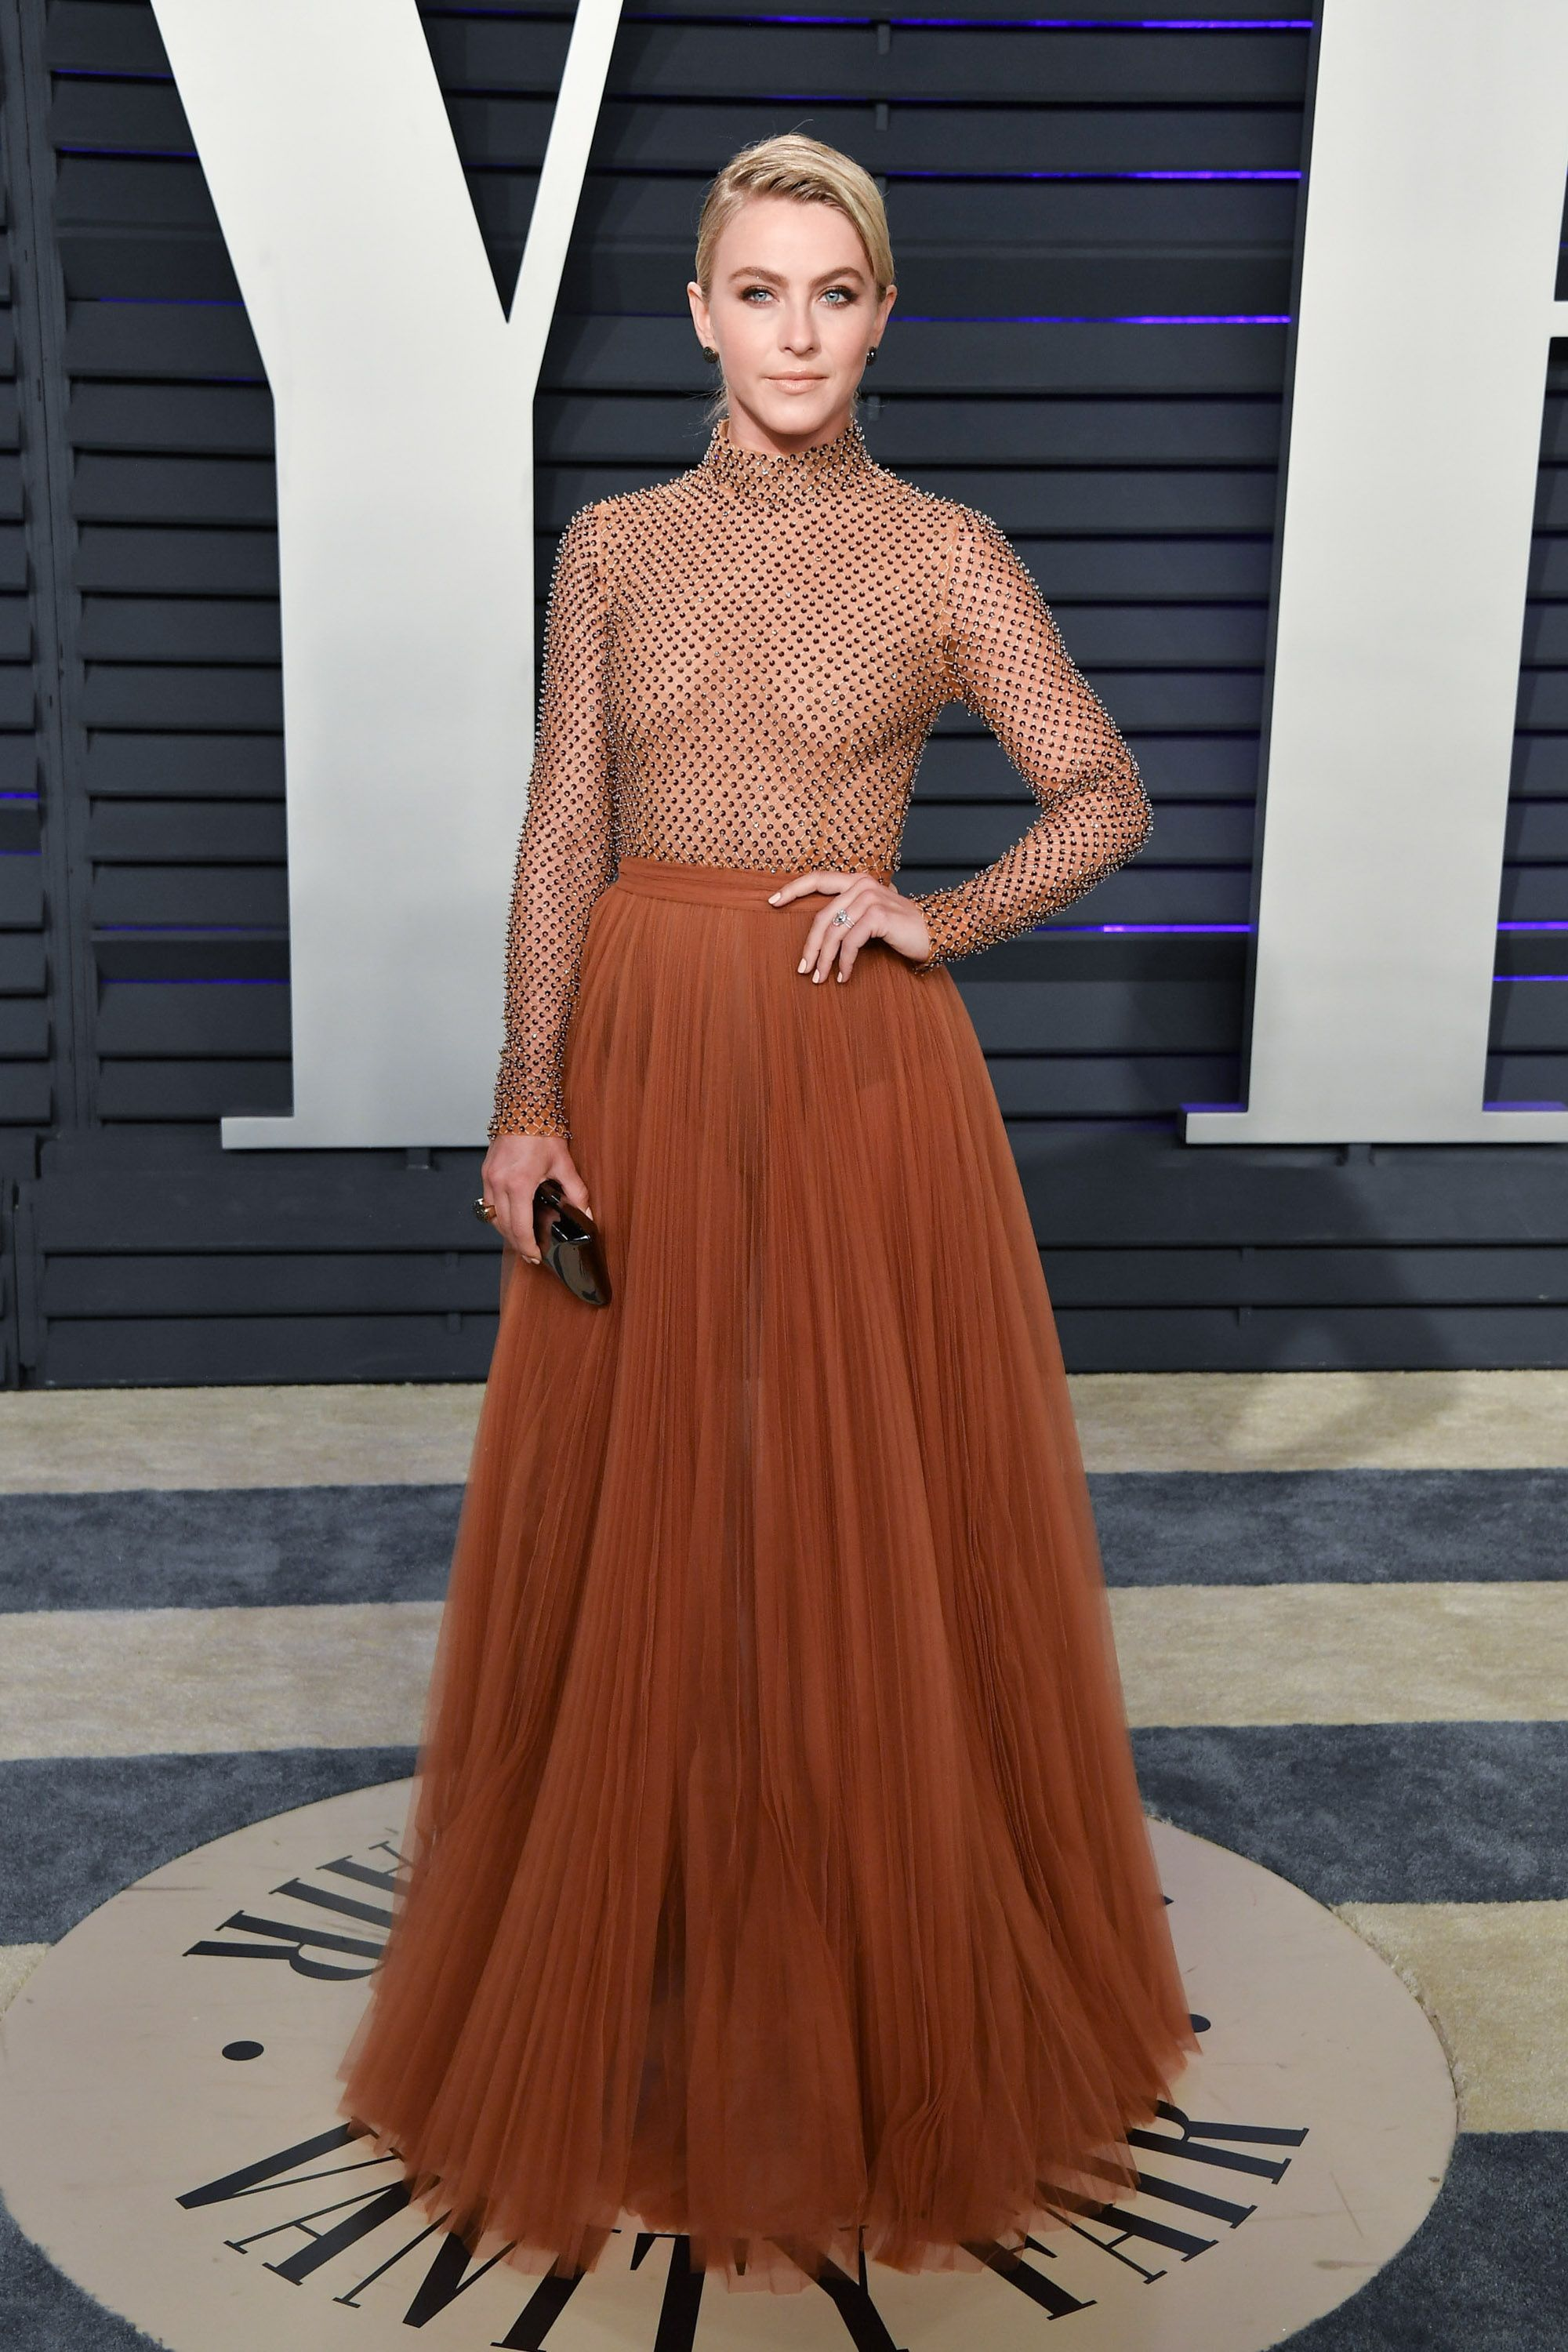 Julianne Hough At Vanity Fair's Oscars after-party, Hough arrived in a caramel-colored J Mendel dress. It was sheer, though not as see-through as Emma Roberts'.